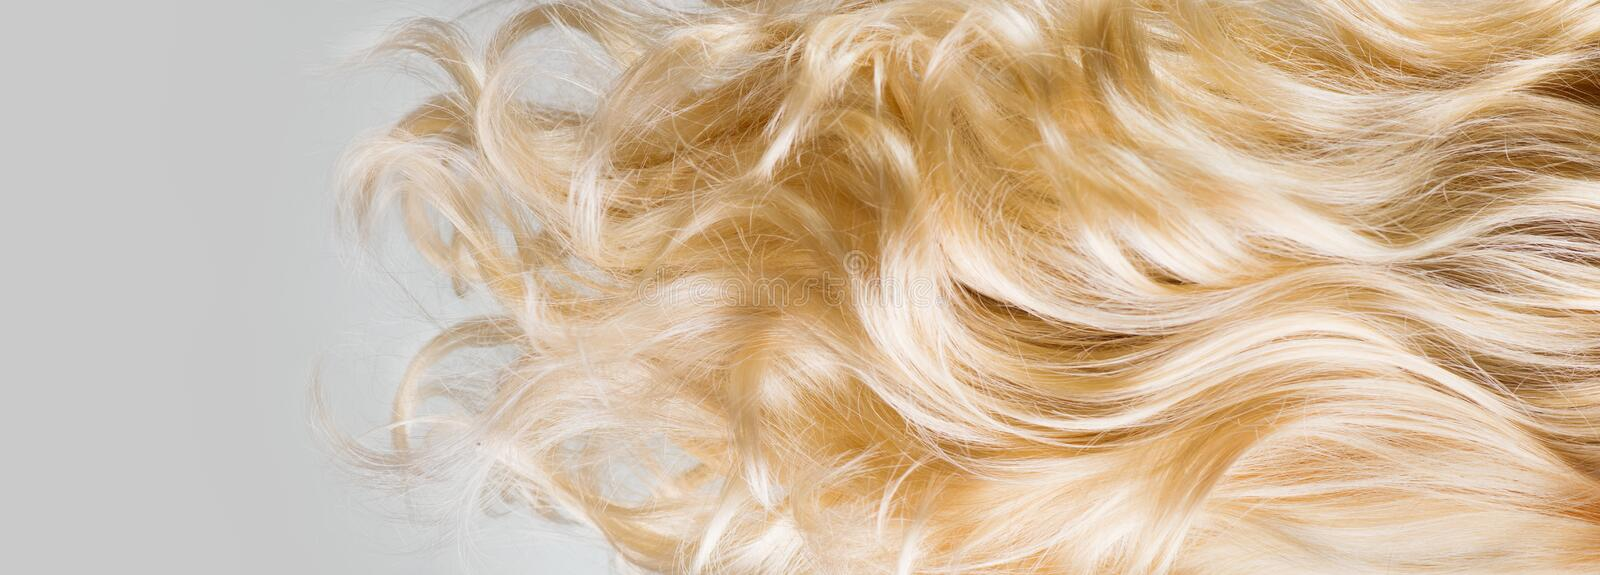 Hair. Beautiful healthy long curly blond hair closeup texture. Dyed wavy blonde hair background. Coloring. Haircare royalty free stock photography